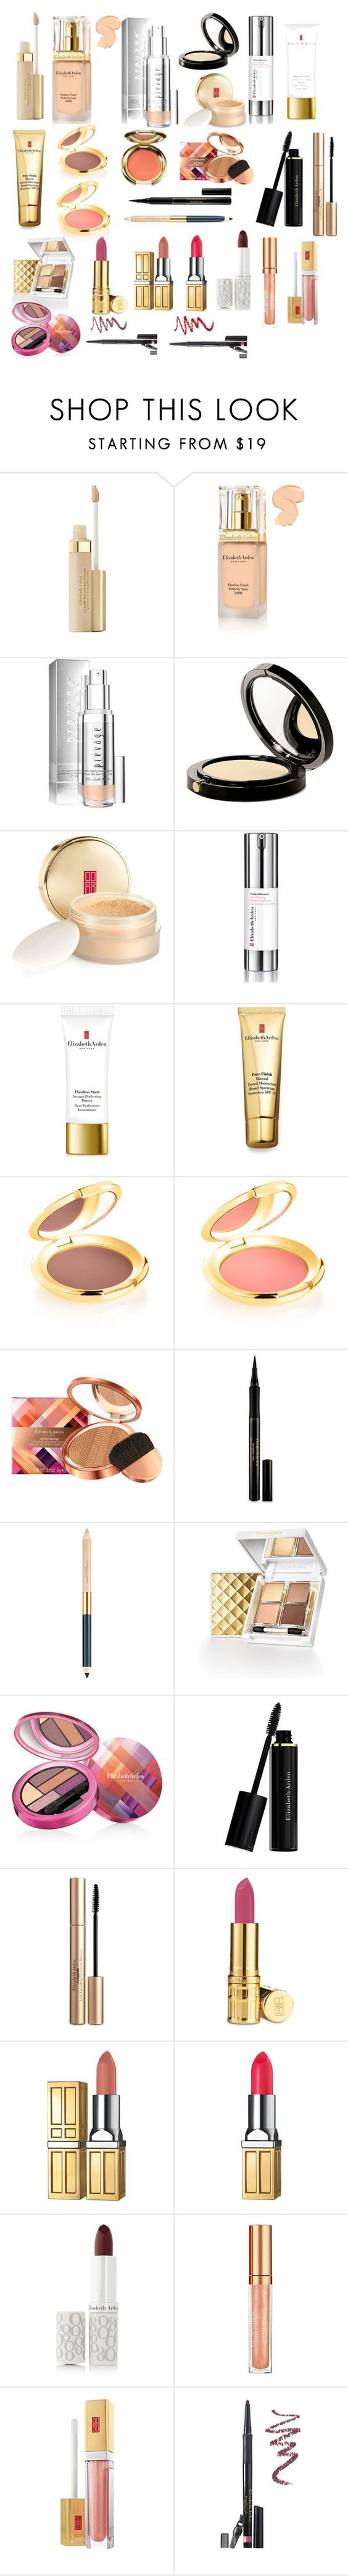 """Elizabeth Arden"" by azra-99 ❤ liked on Polyvore featuring beauty and Elizabeth Arden"